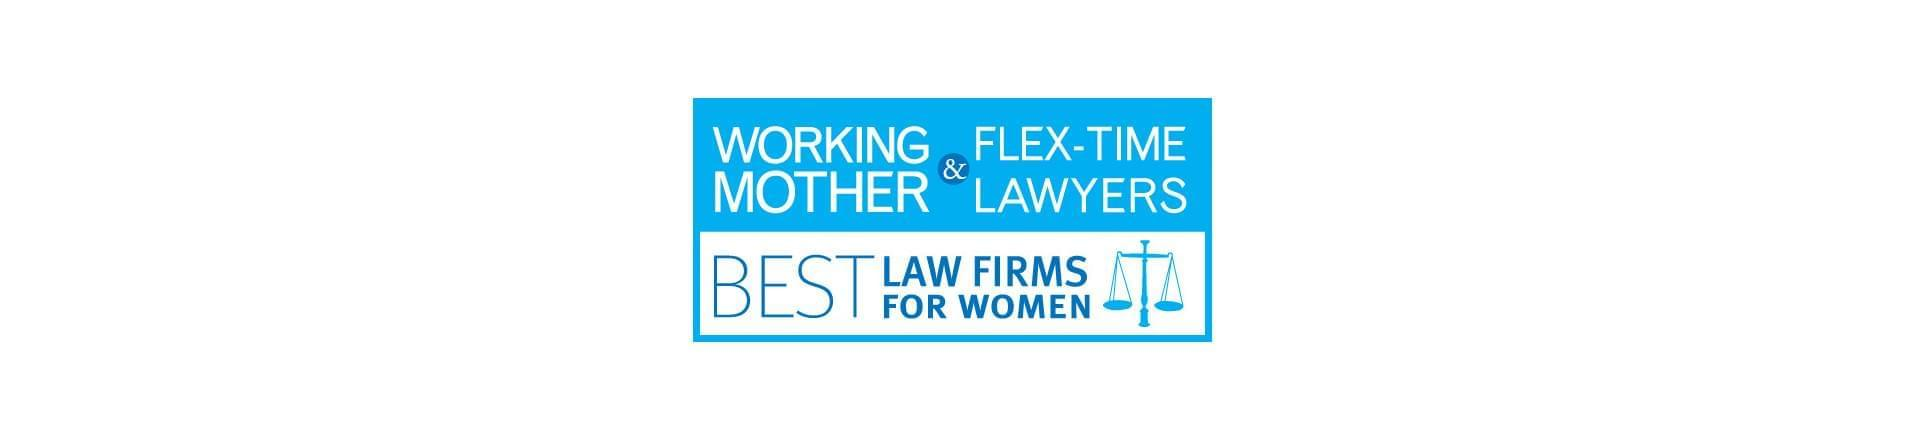 Working Mother and Flex-Time Lawyers Best Law Firms For Women logo